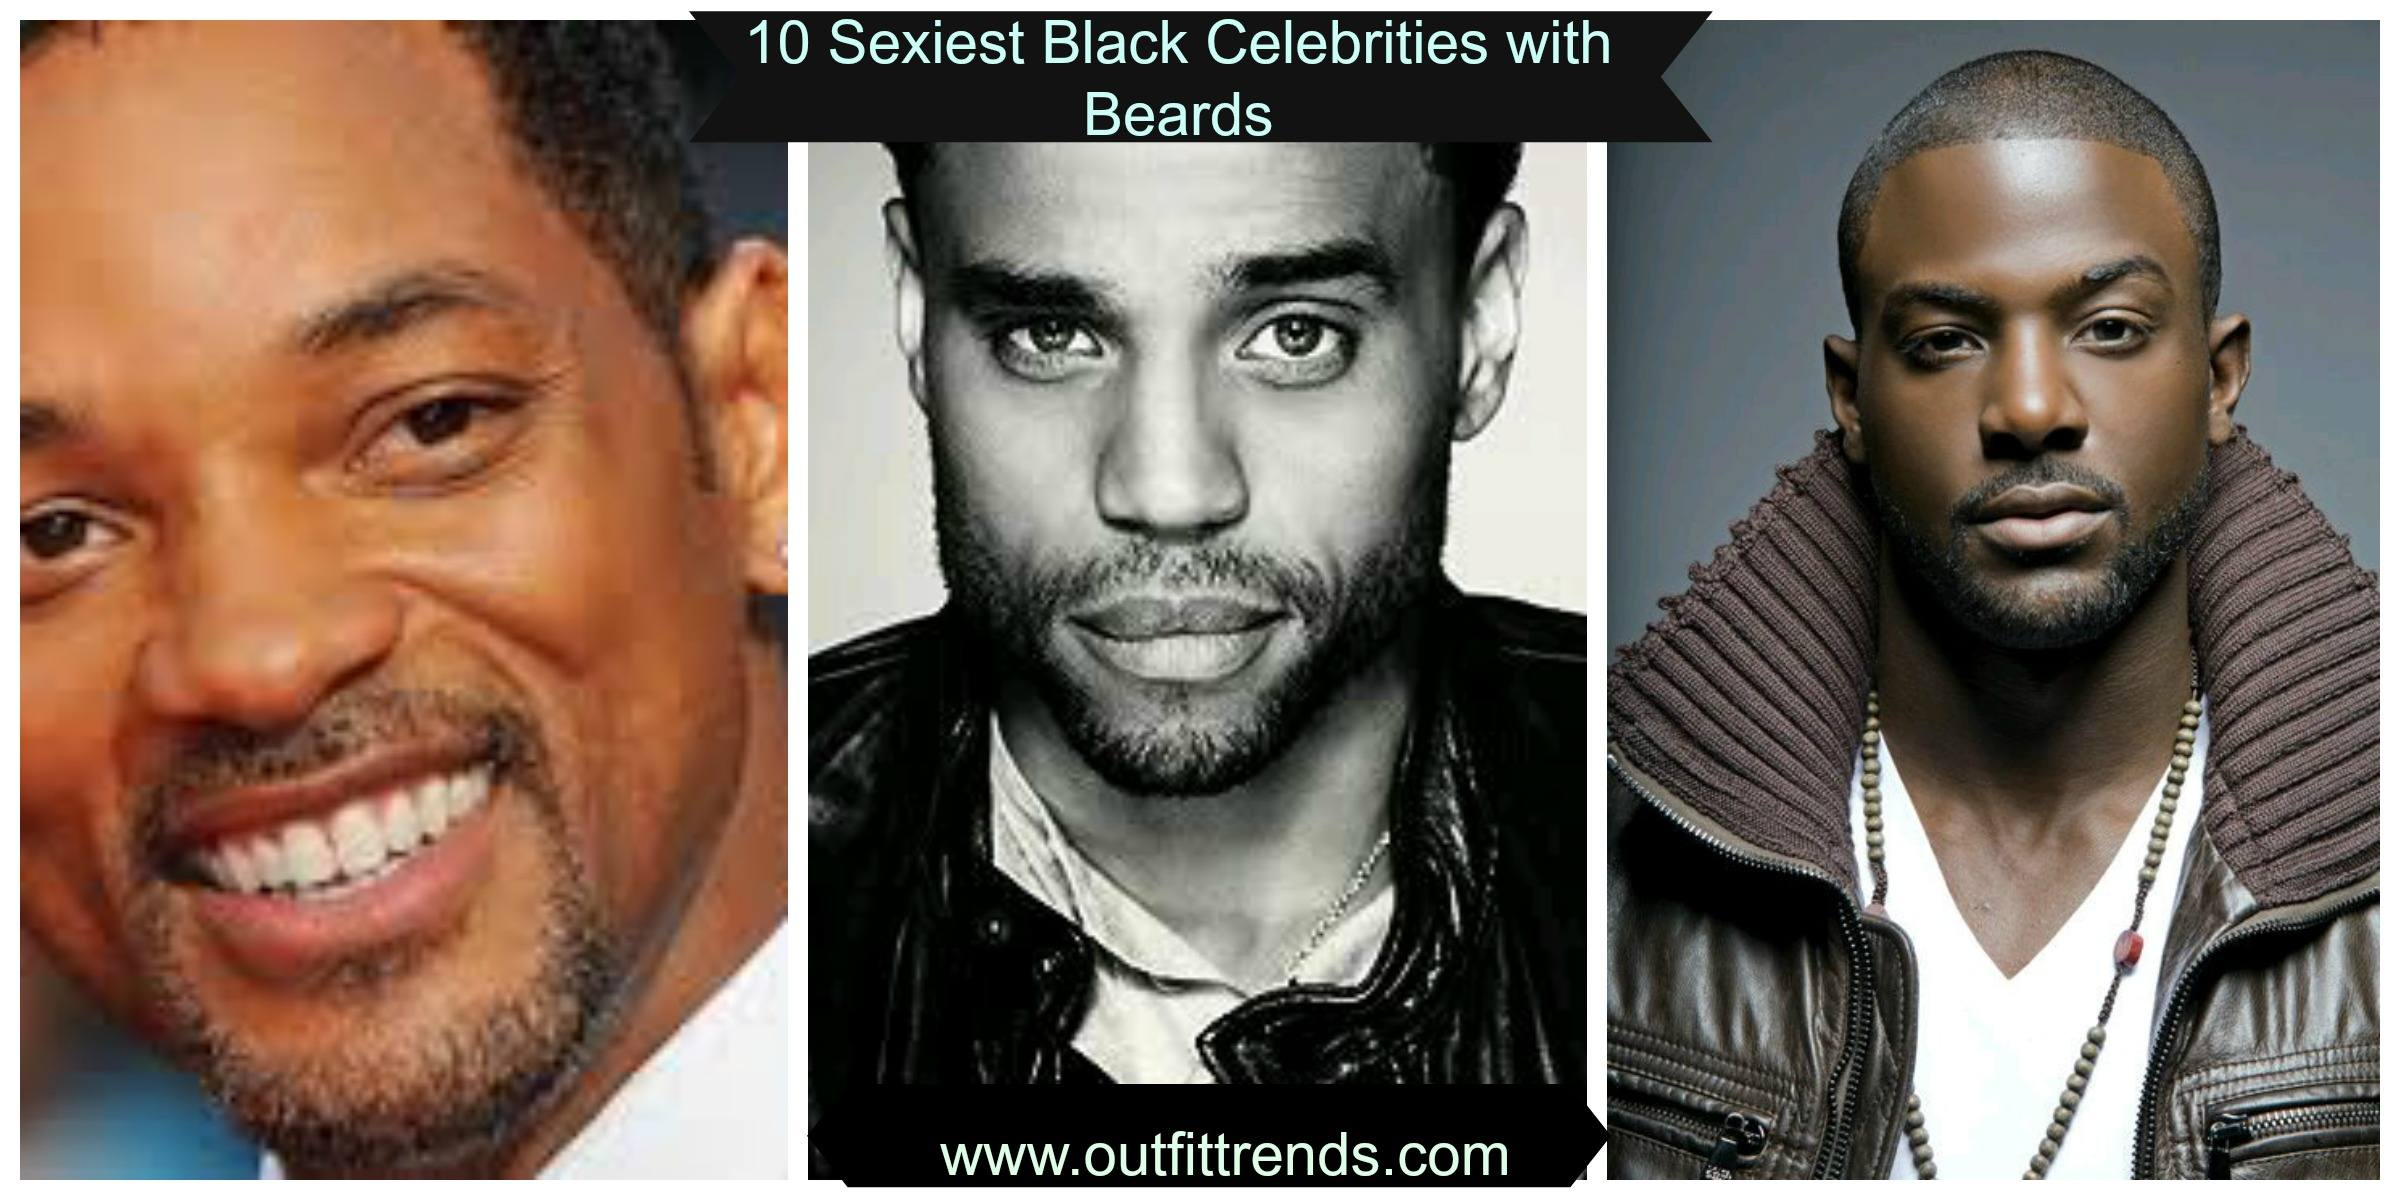 Black Facial Hair Styles: Black Celebrities With Beards-10 Sexiest Black Actors With